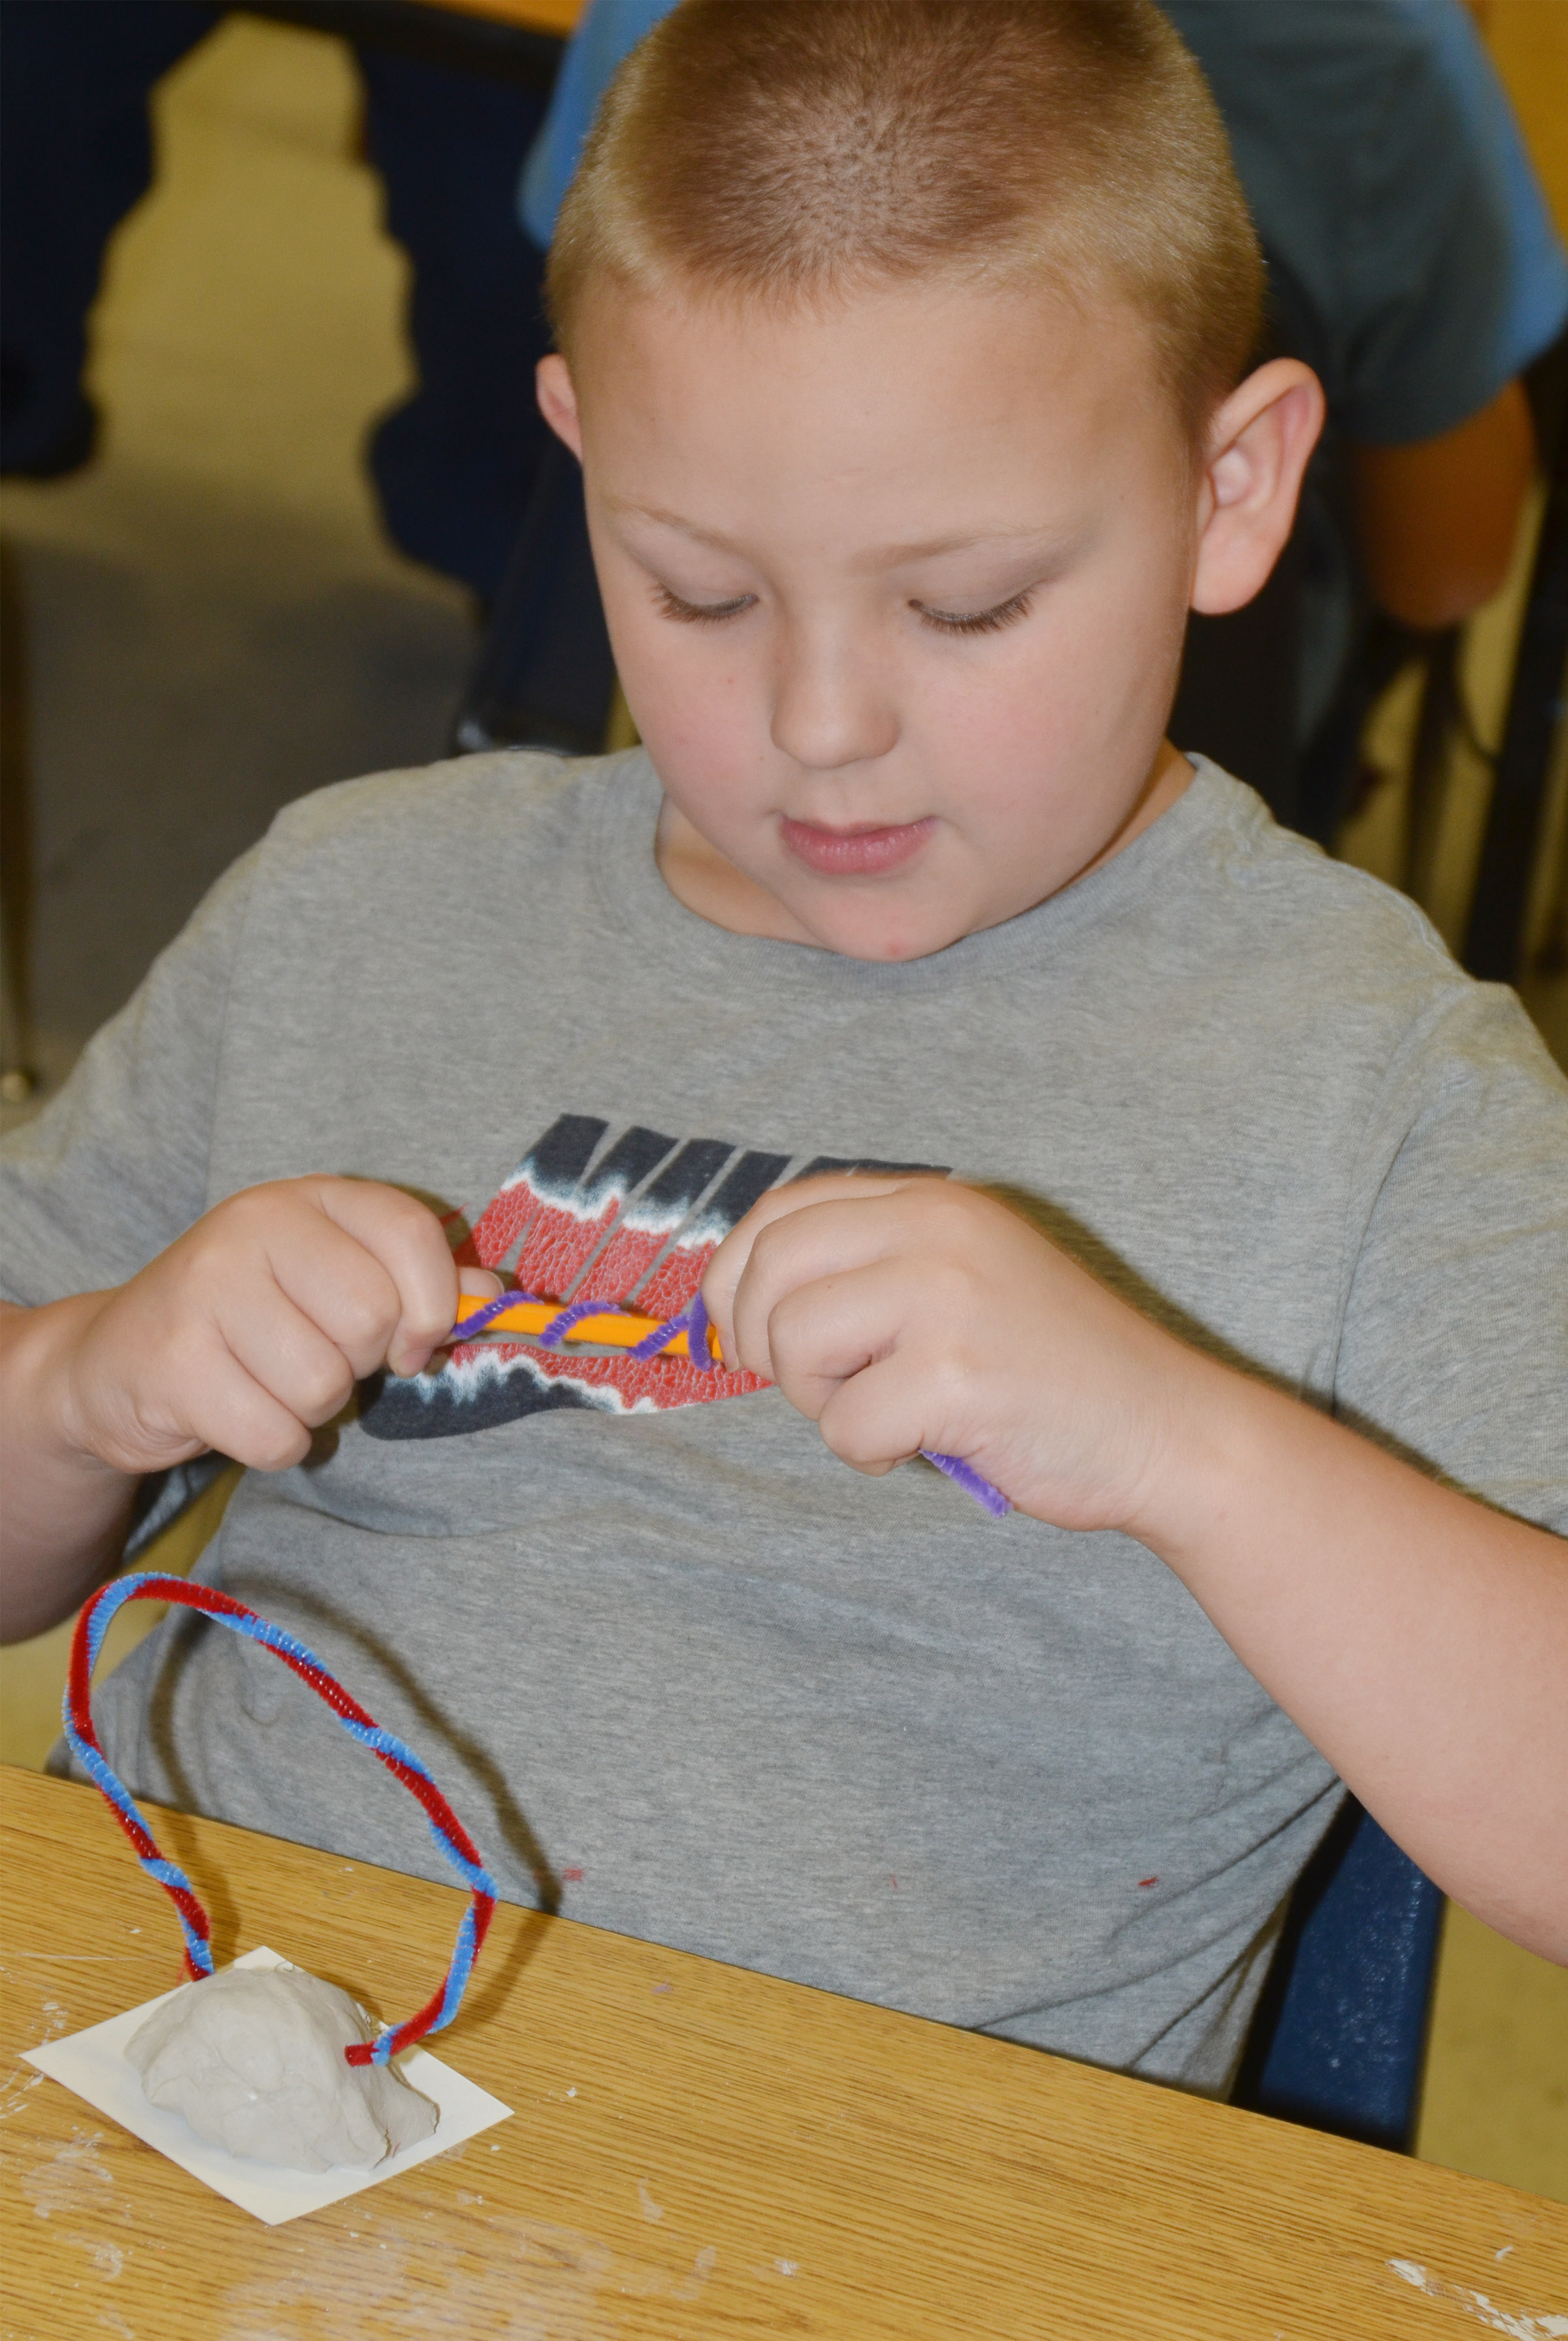 CES second-grader Peyton Mitchell twists his pipe cleaner around his pencil.